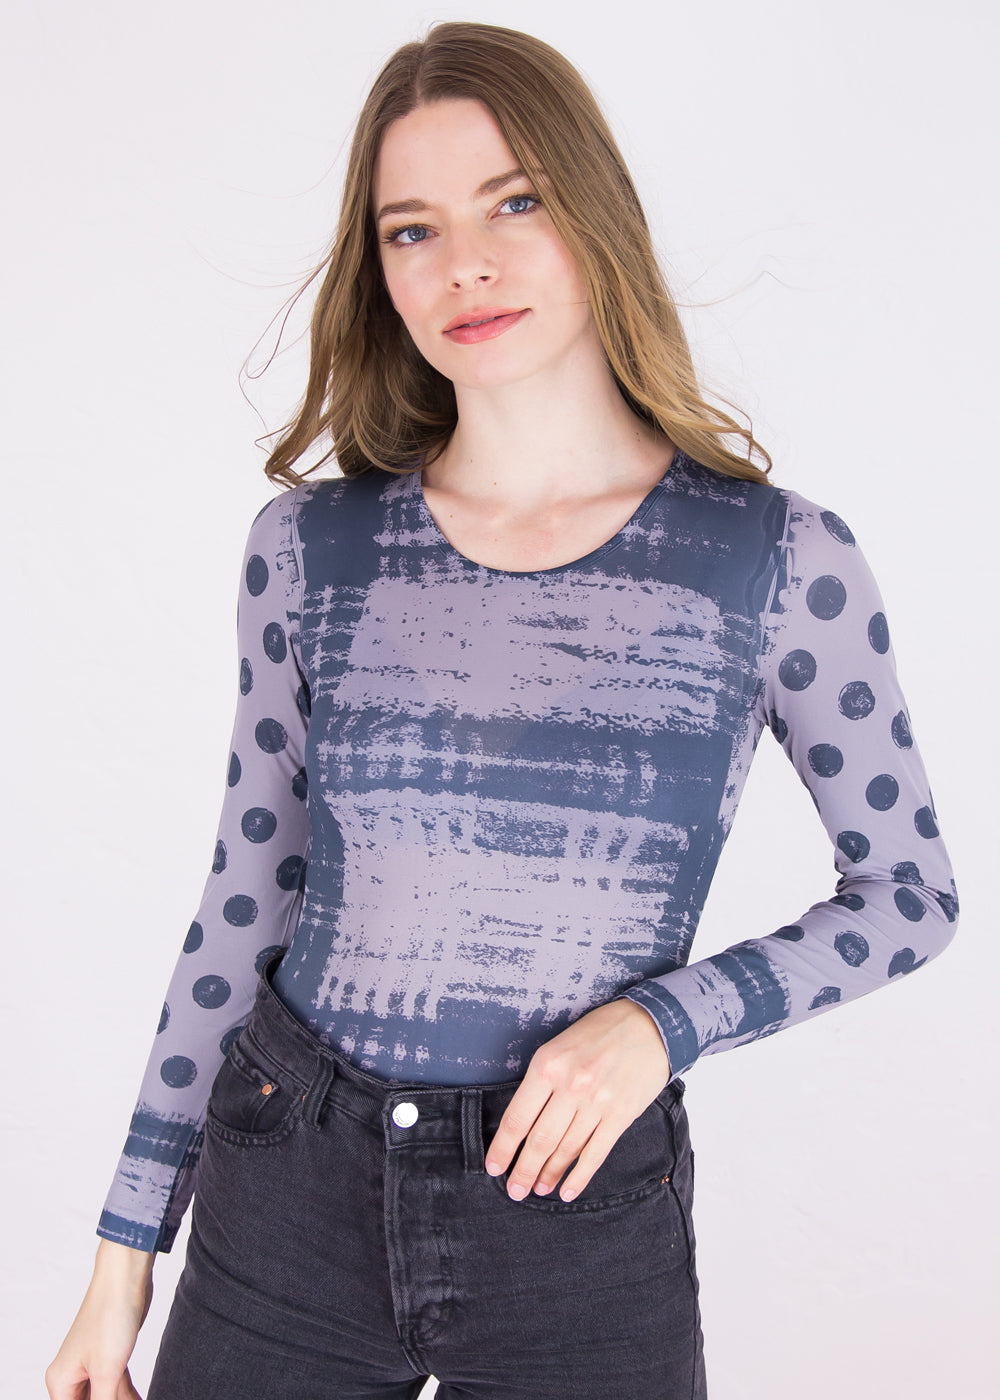 Grunge Collage Crew Neck Top - New Color!